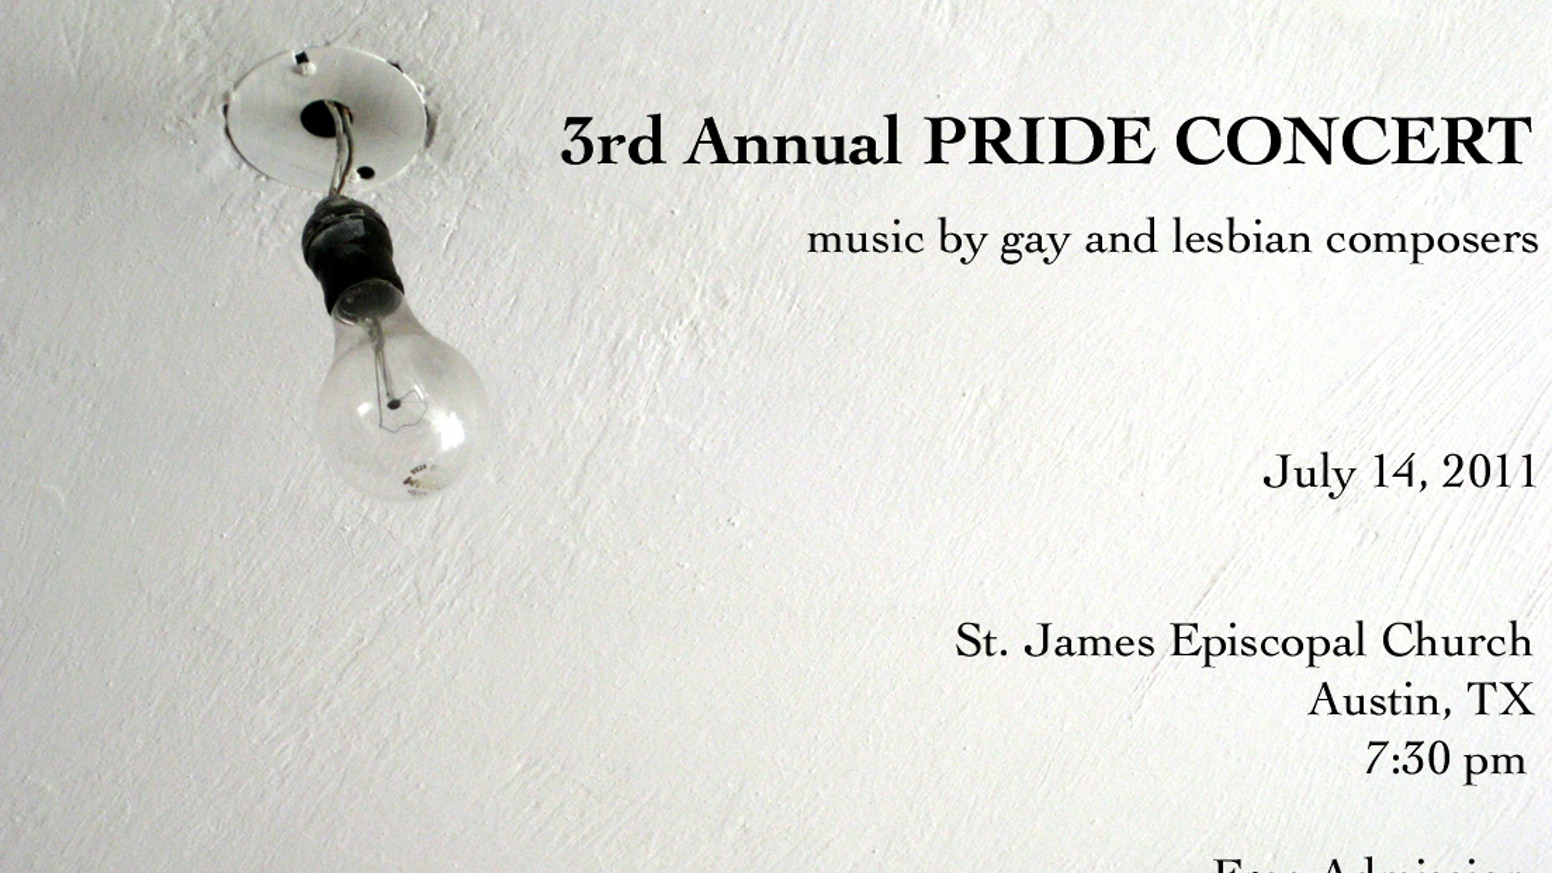 3rd Annual Pride Concert Music By Gay And Lesbian Composers By Russell Reed Kickstarter